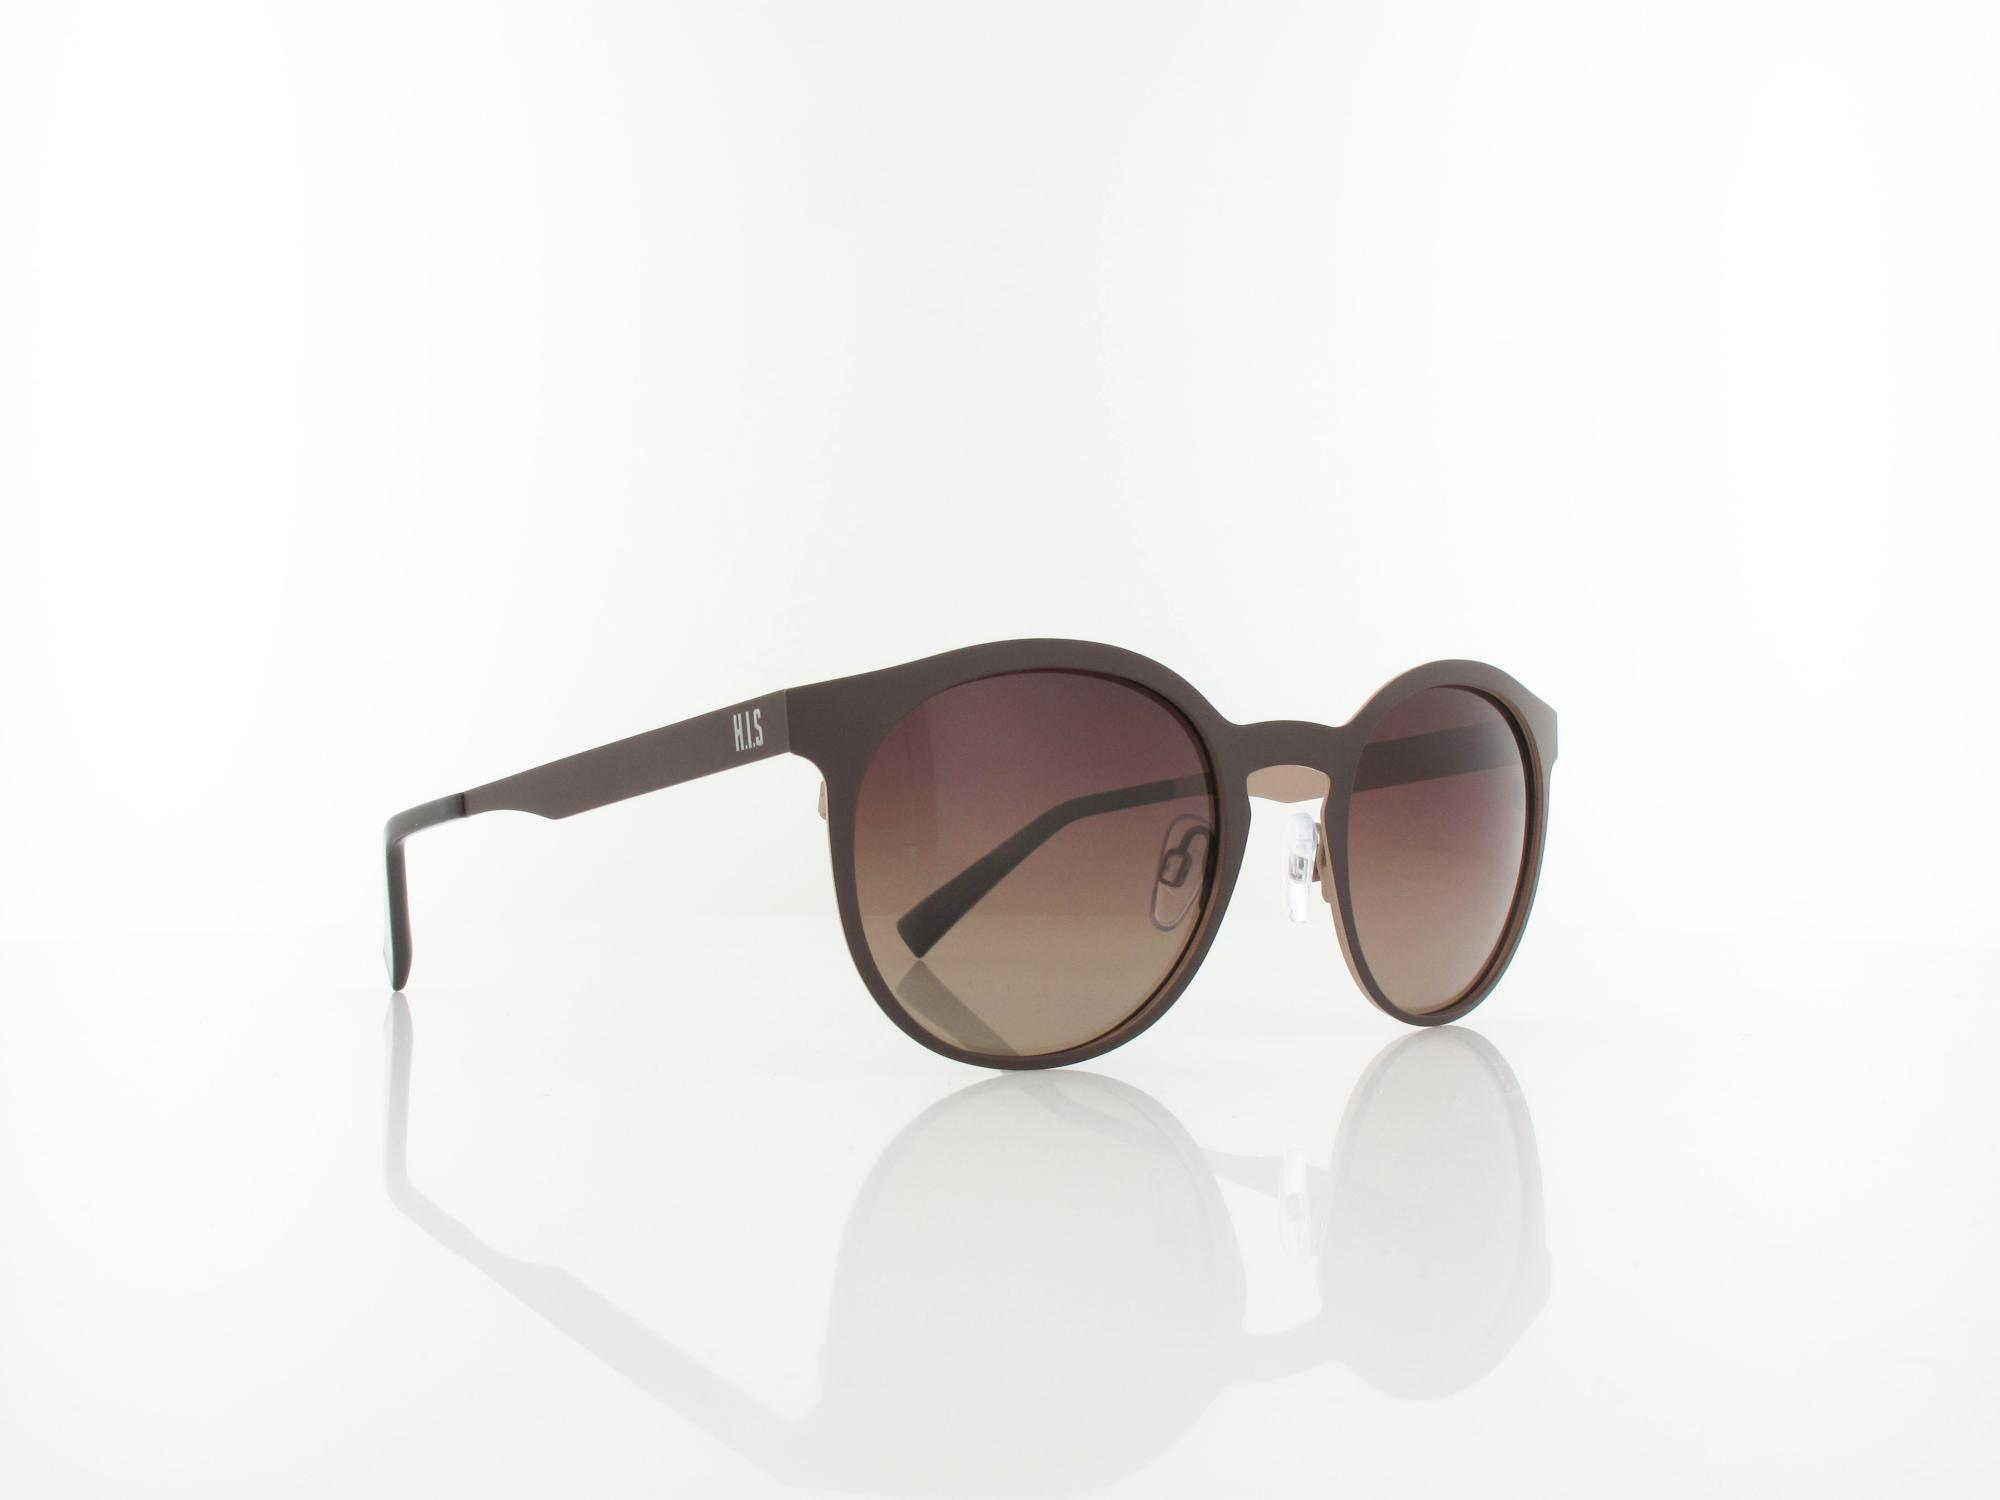 HIS polarized | HP74104-2 52 | brown / brown gradient polarized